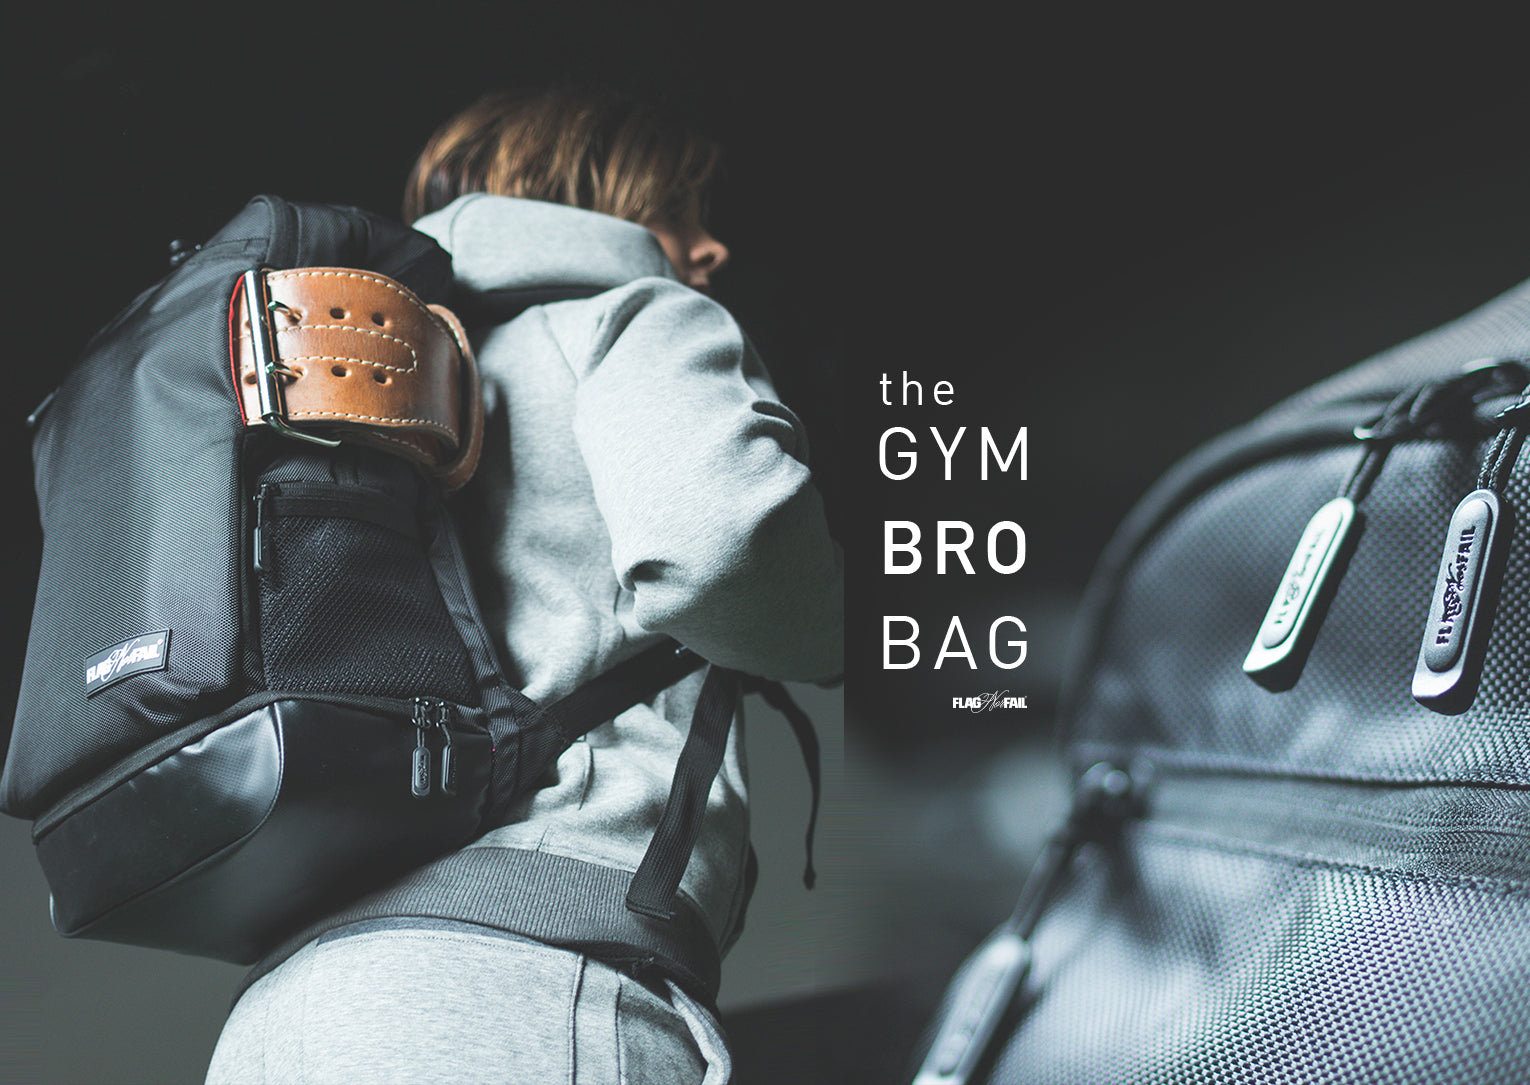 570bd6c68e75 the Gym Bro Bag